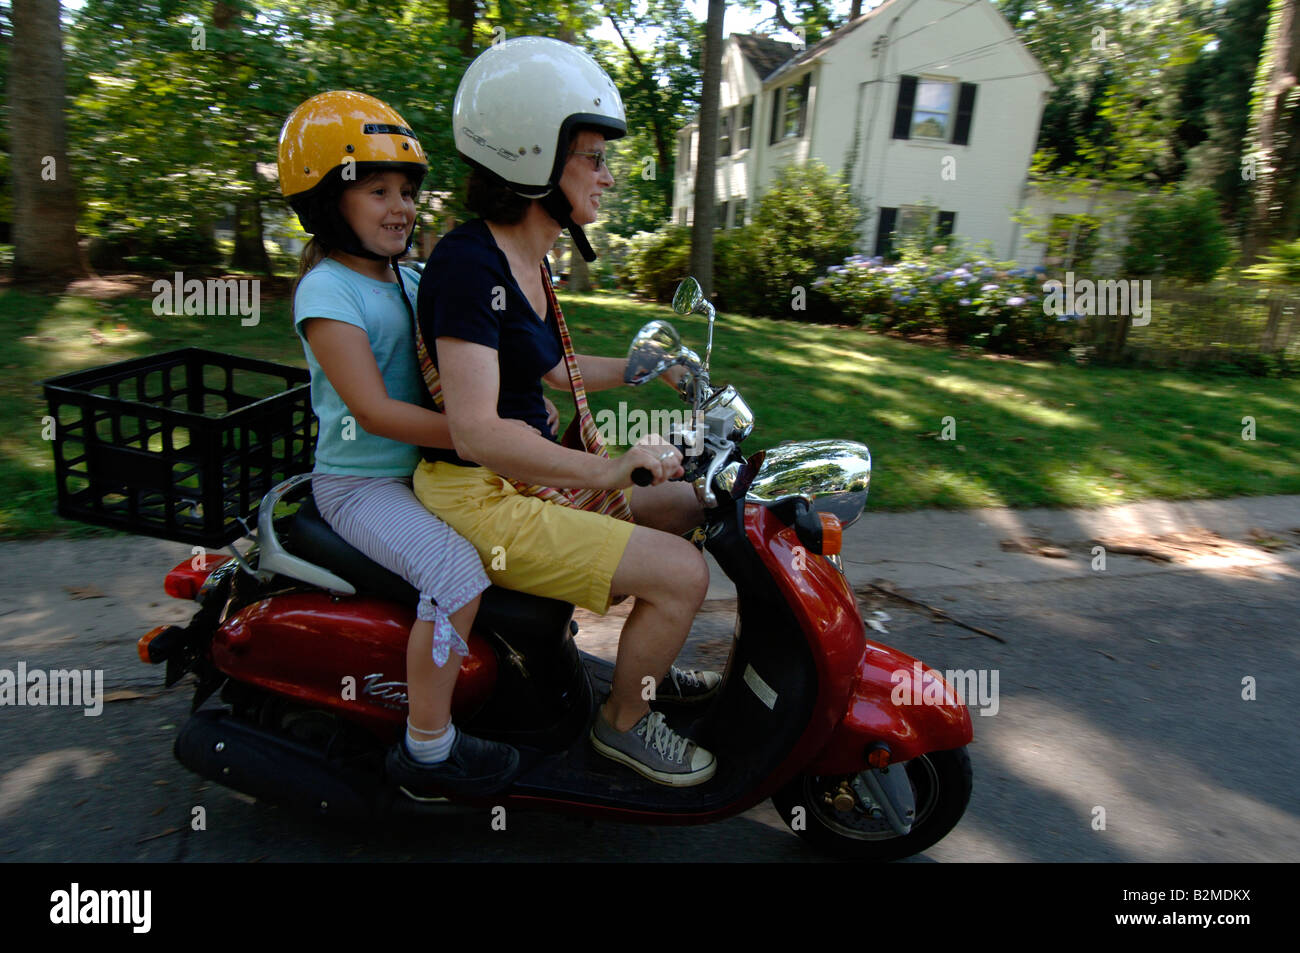 Woman and 7 year old ride Yamaha Vino scooter Stock Photo ...